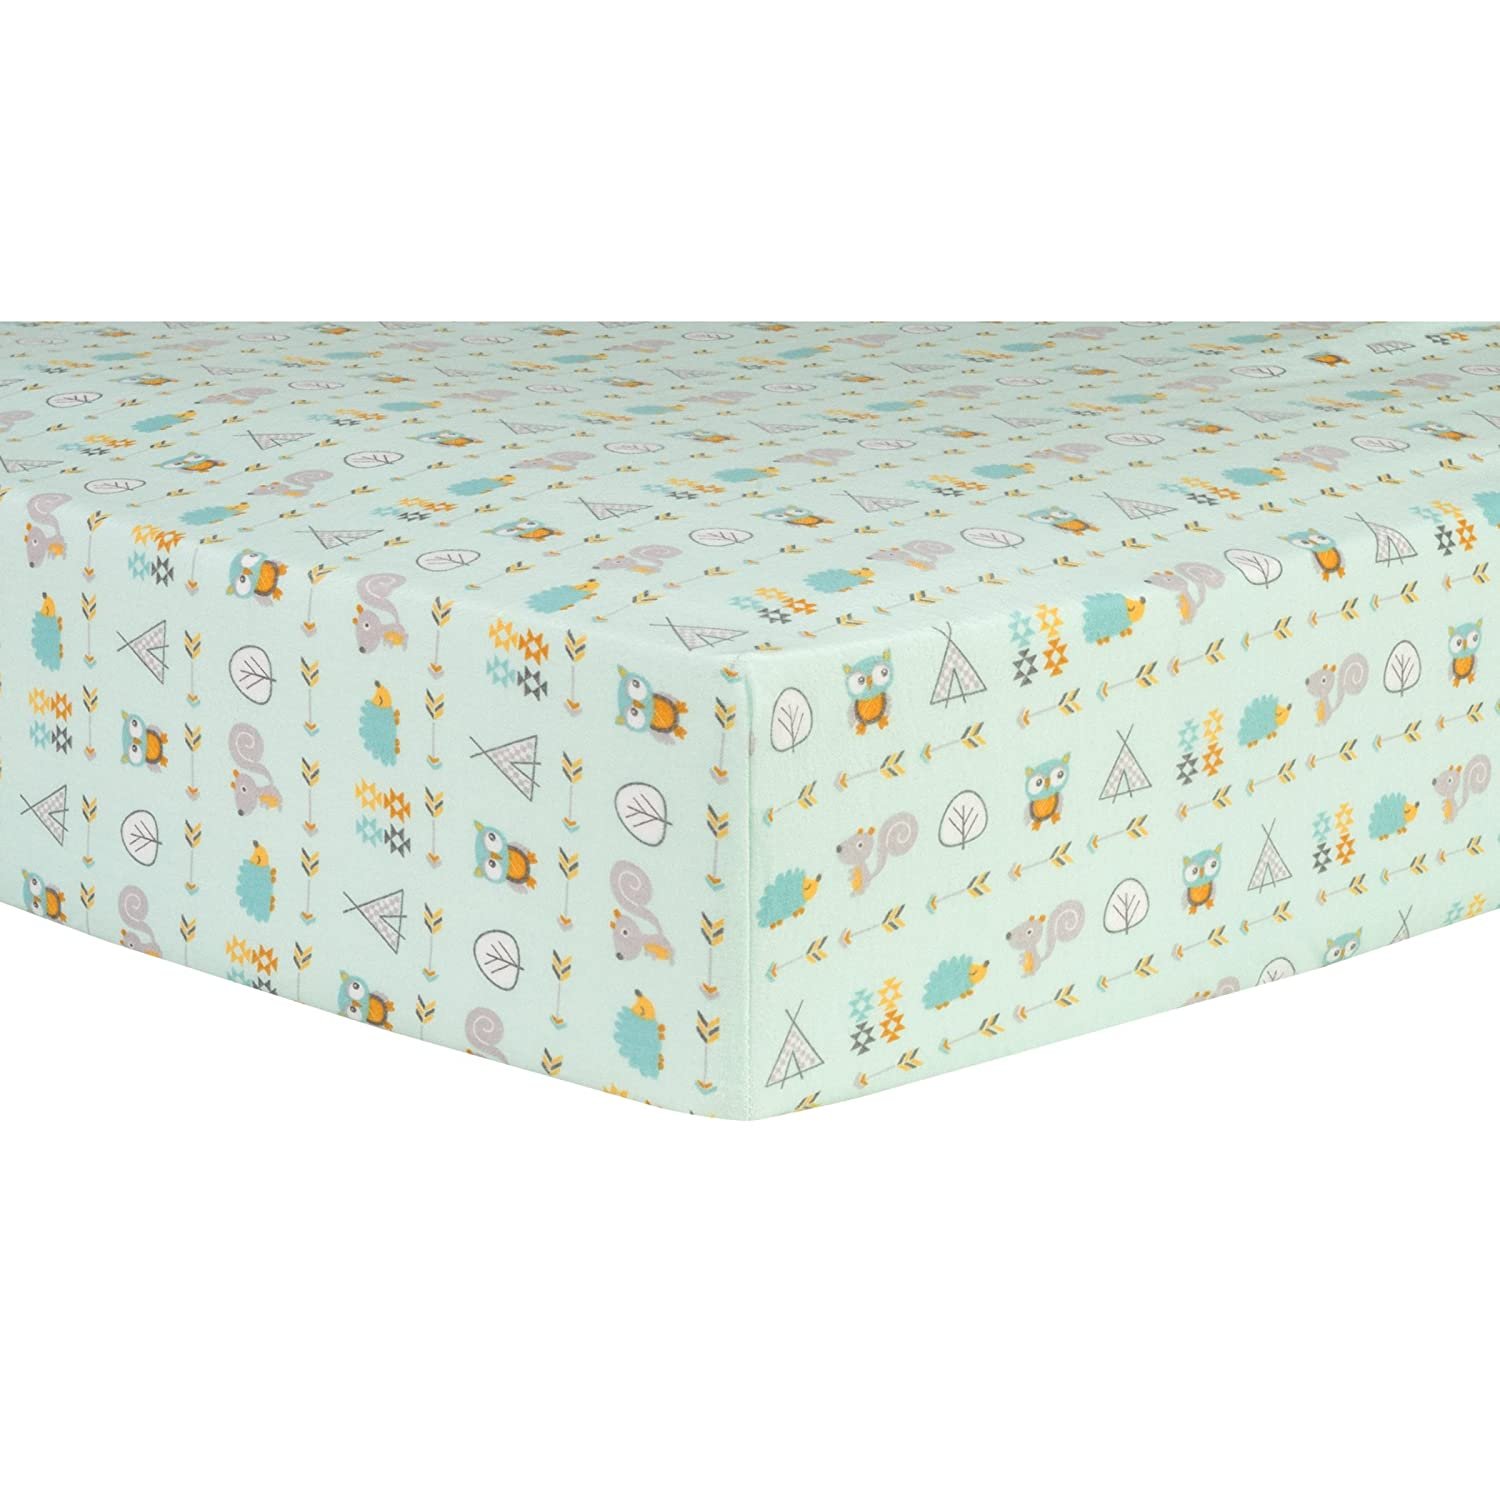 Trend Lab Southwest Adventures Deluxe Flannel Fitted Crib Sheet 103181